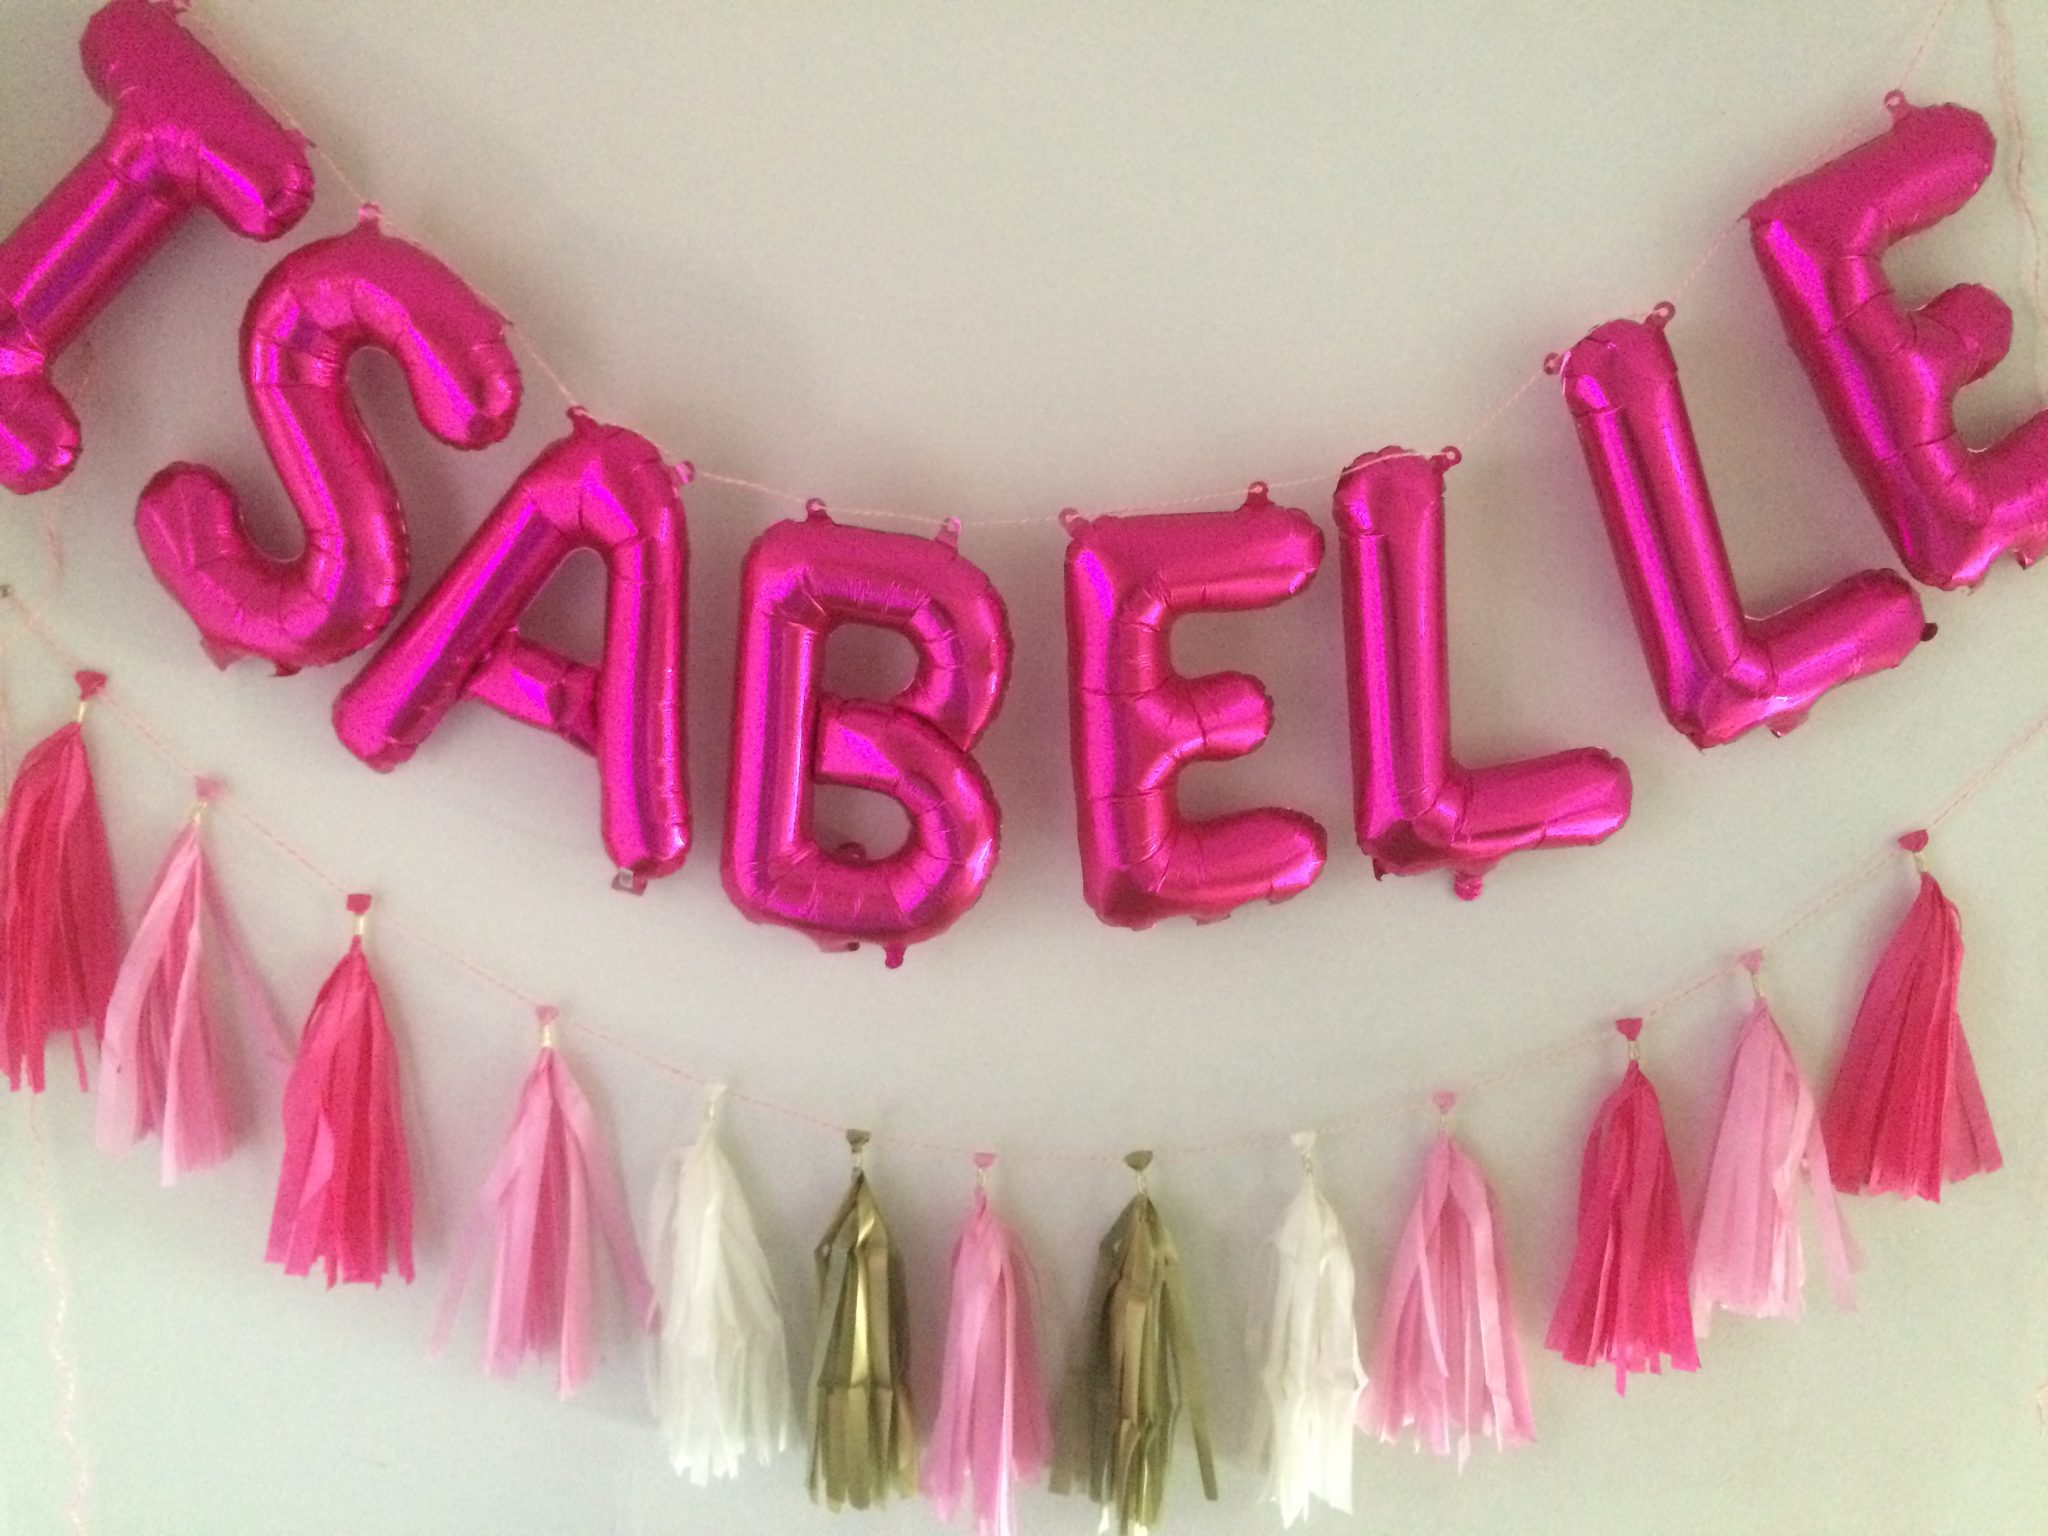 pink balloon letters and tassel dublin